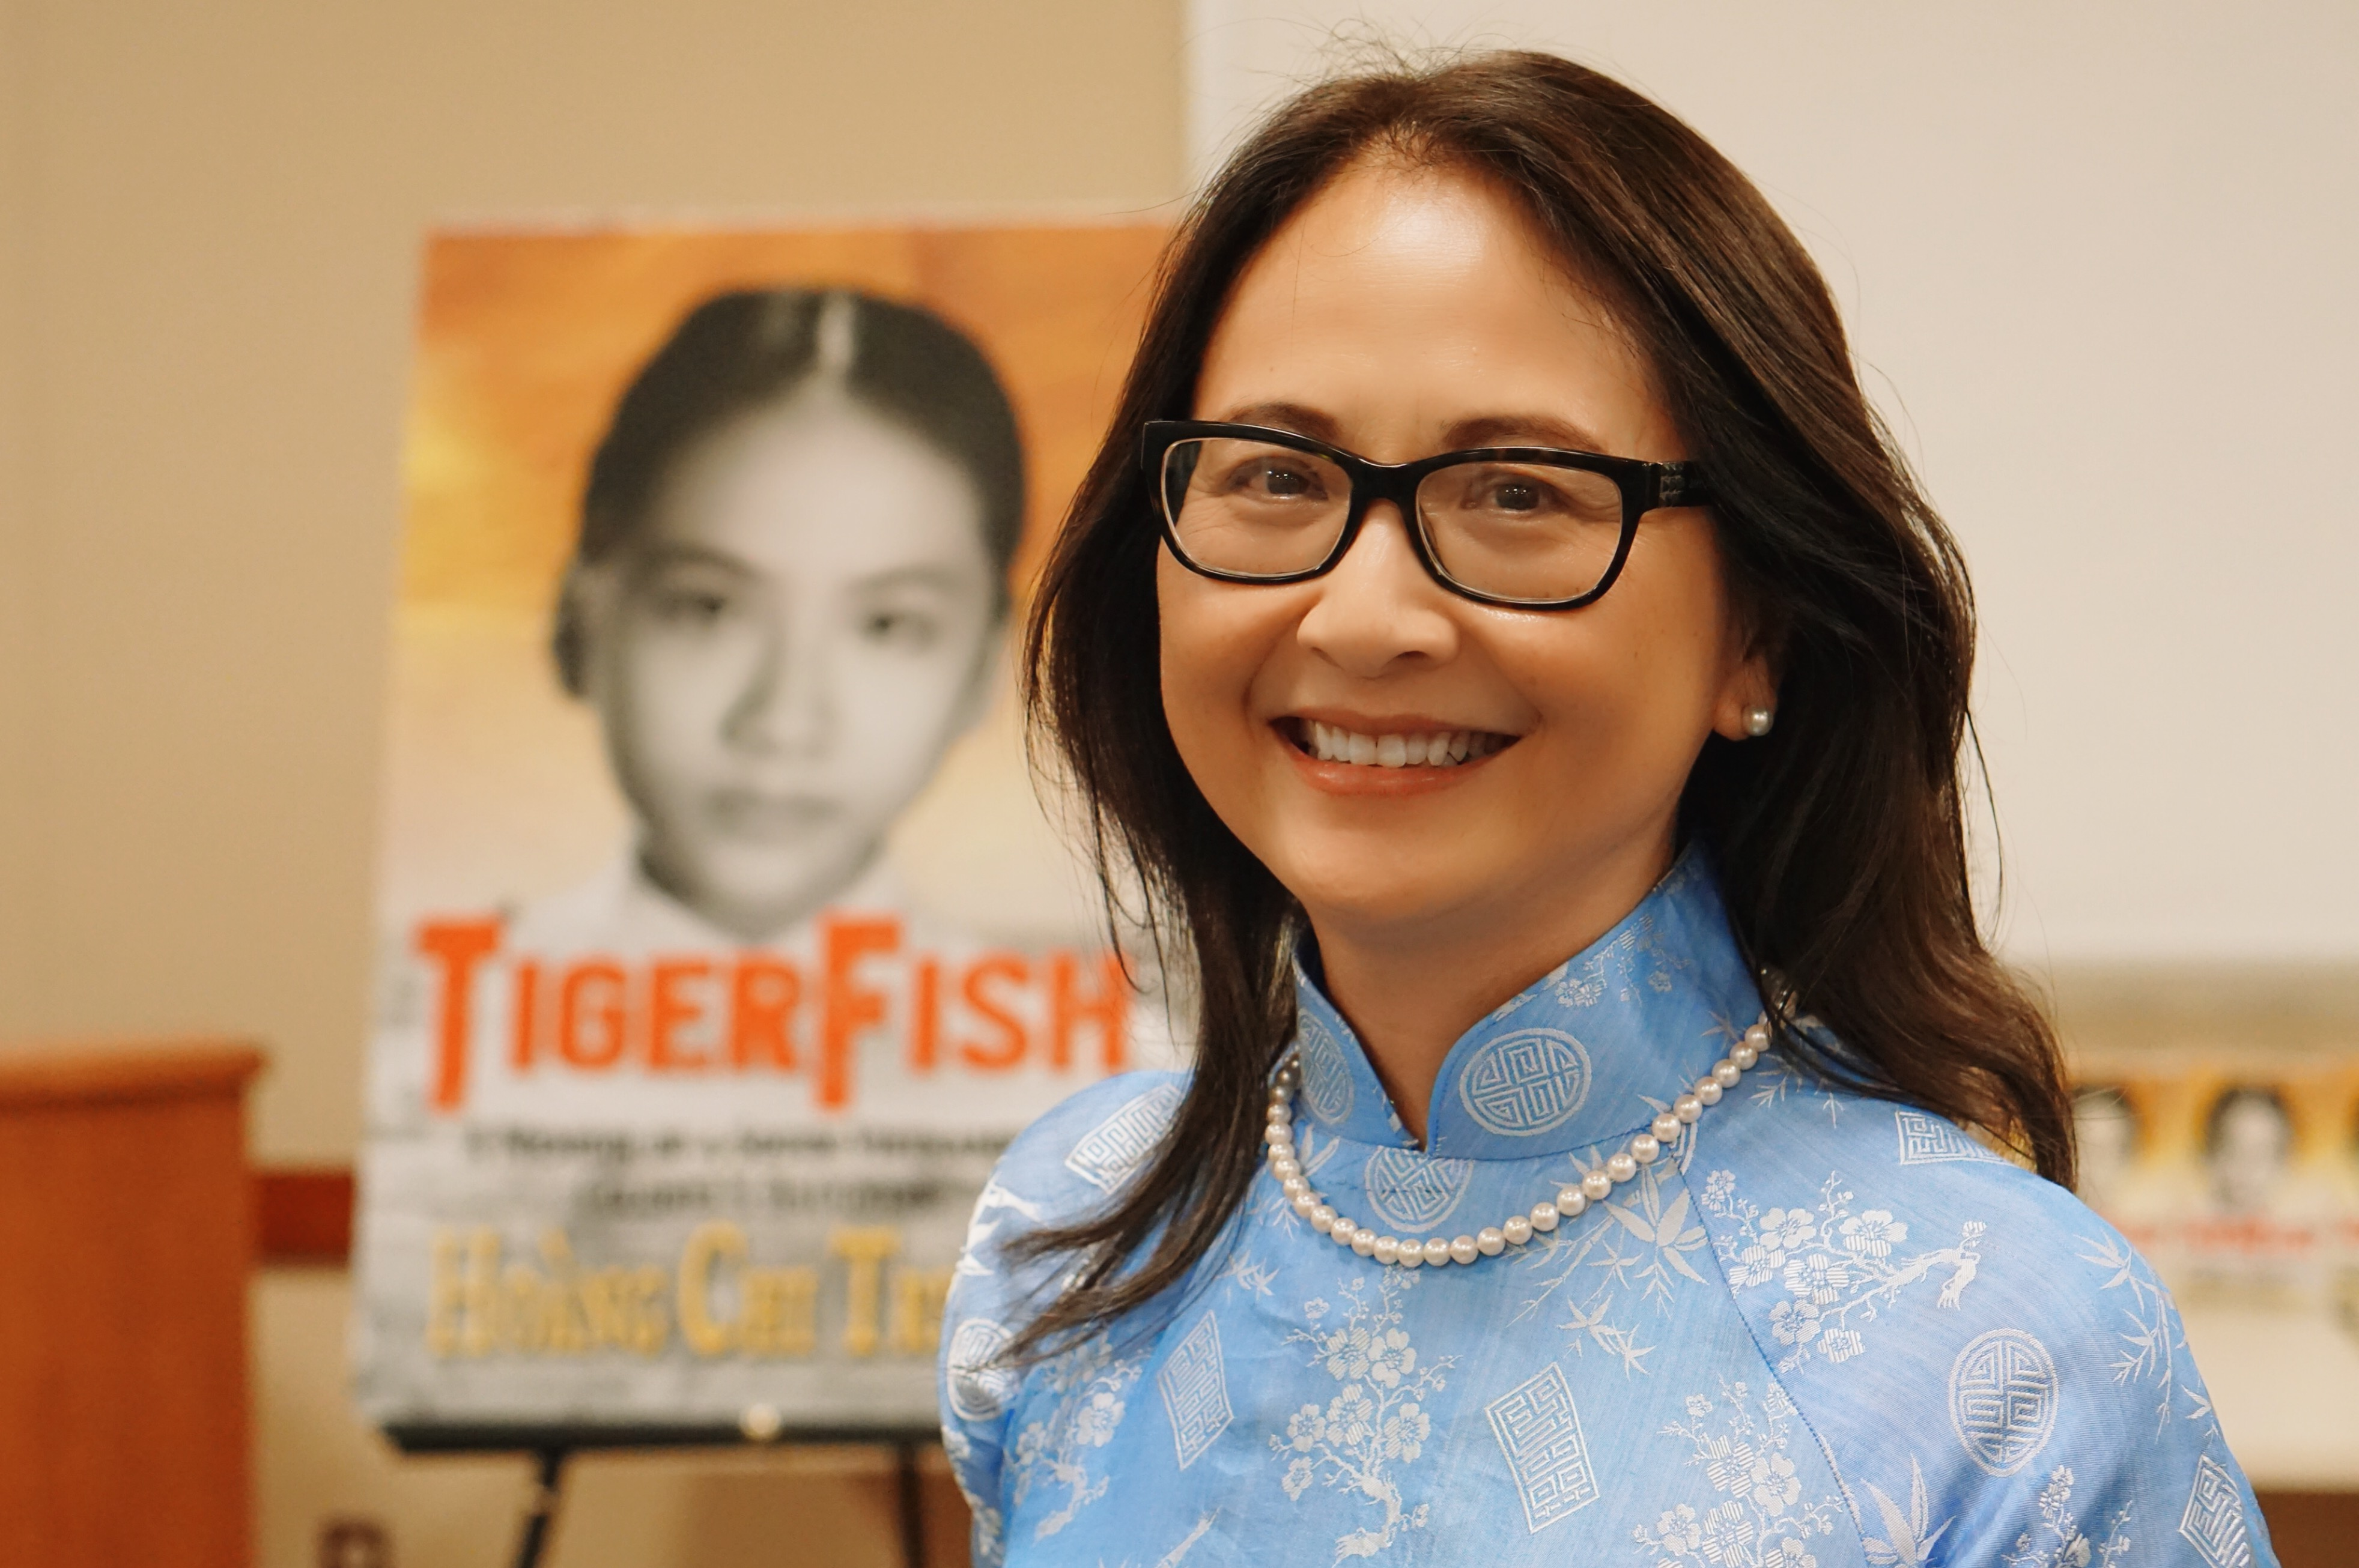 Know your neighbor: Hoàng Chi Trương Smith, author of TigerFish